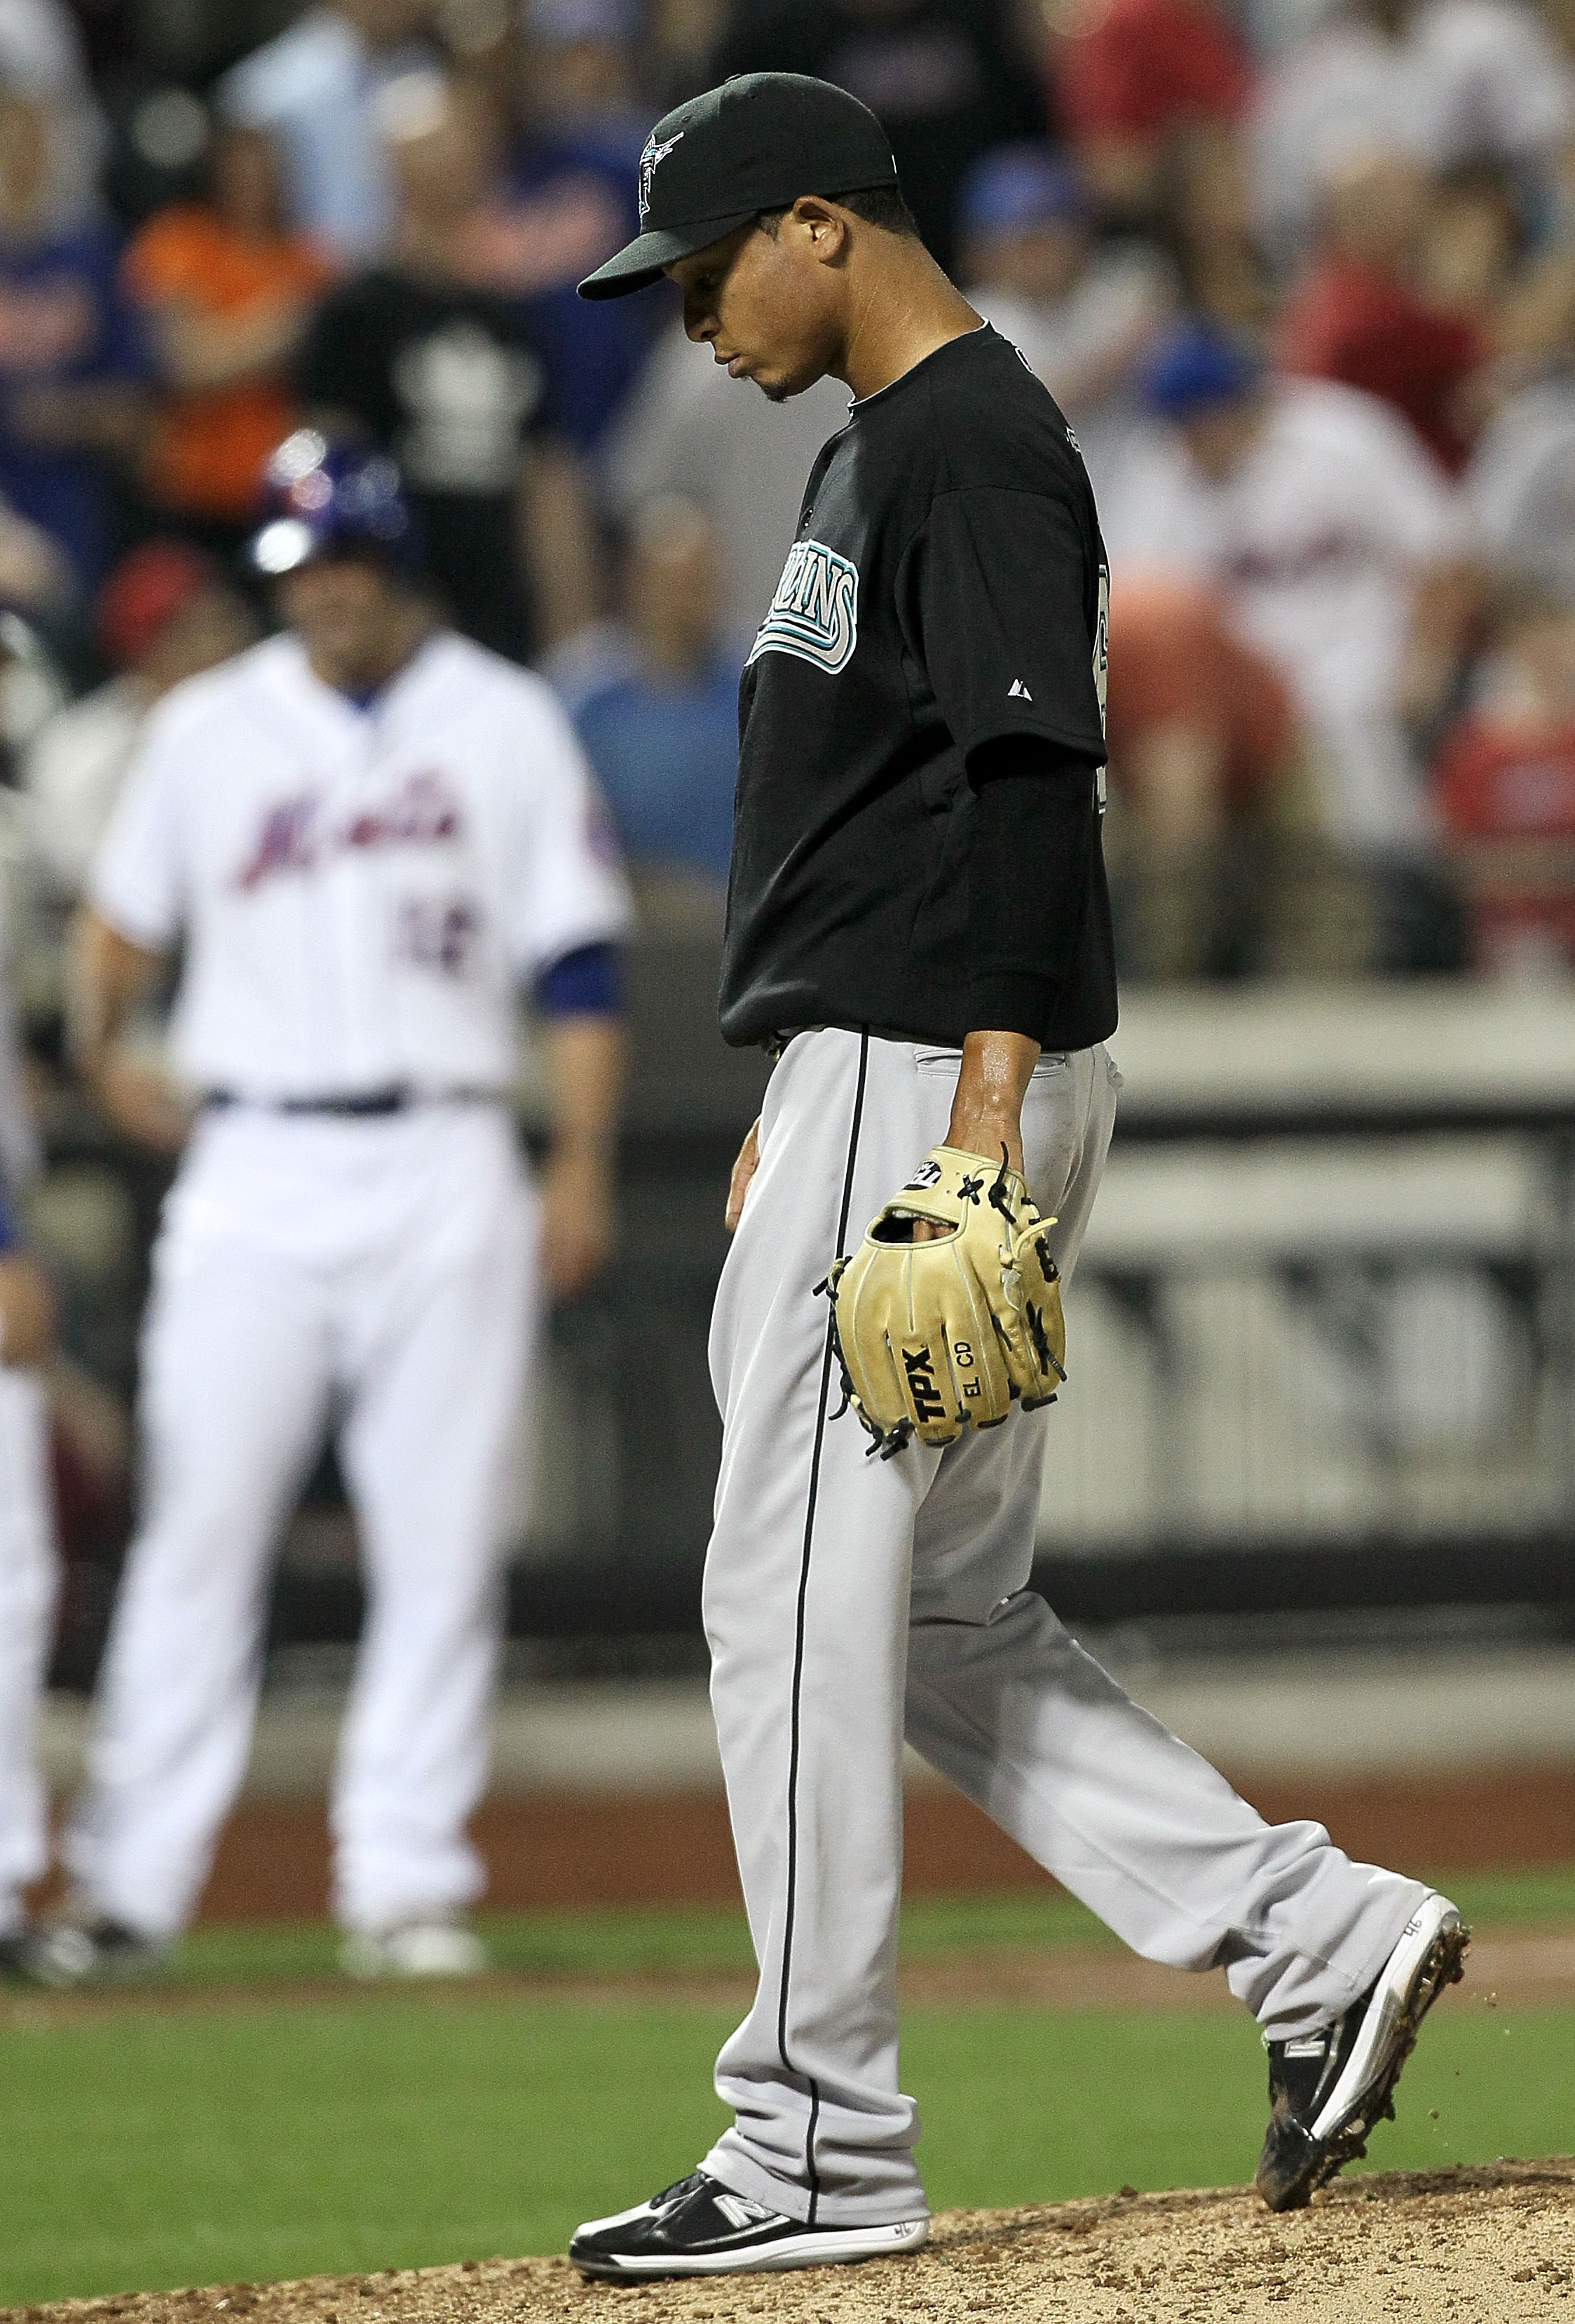 NEW YORK - APRIL 07:  Leo Nunez #46 of the Florida Marlins reacts after his eigth inning game tying bases loaded balk against the New York Mets on April 7, 2010 at Citi Field in the Flushing neighborhood of the Queens borough of New York City.  (Photo by